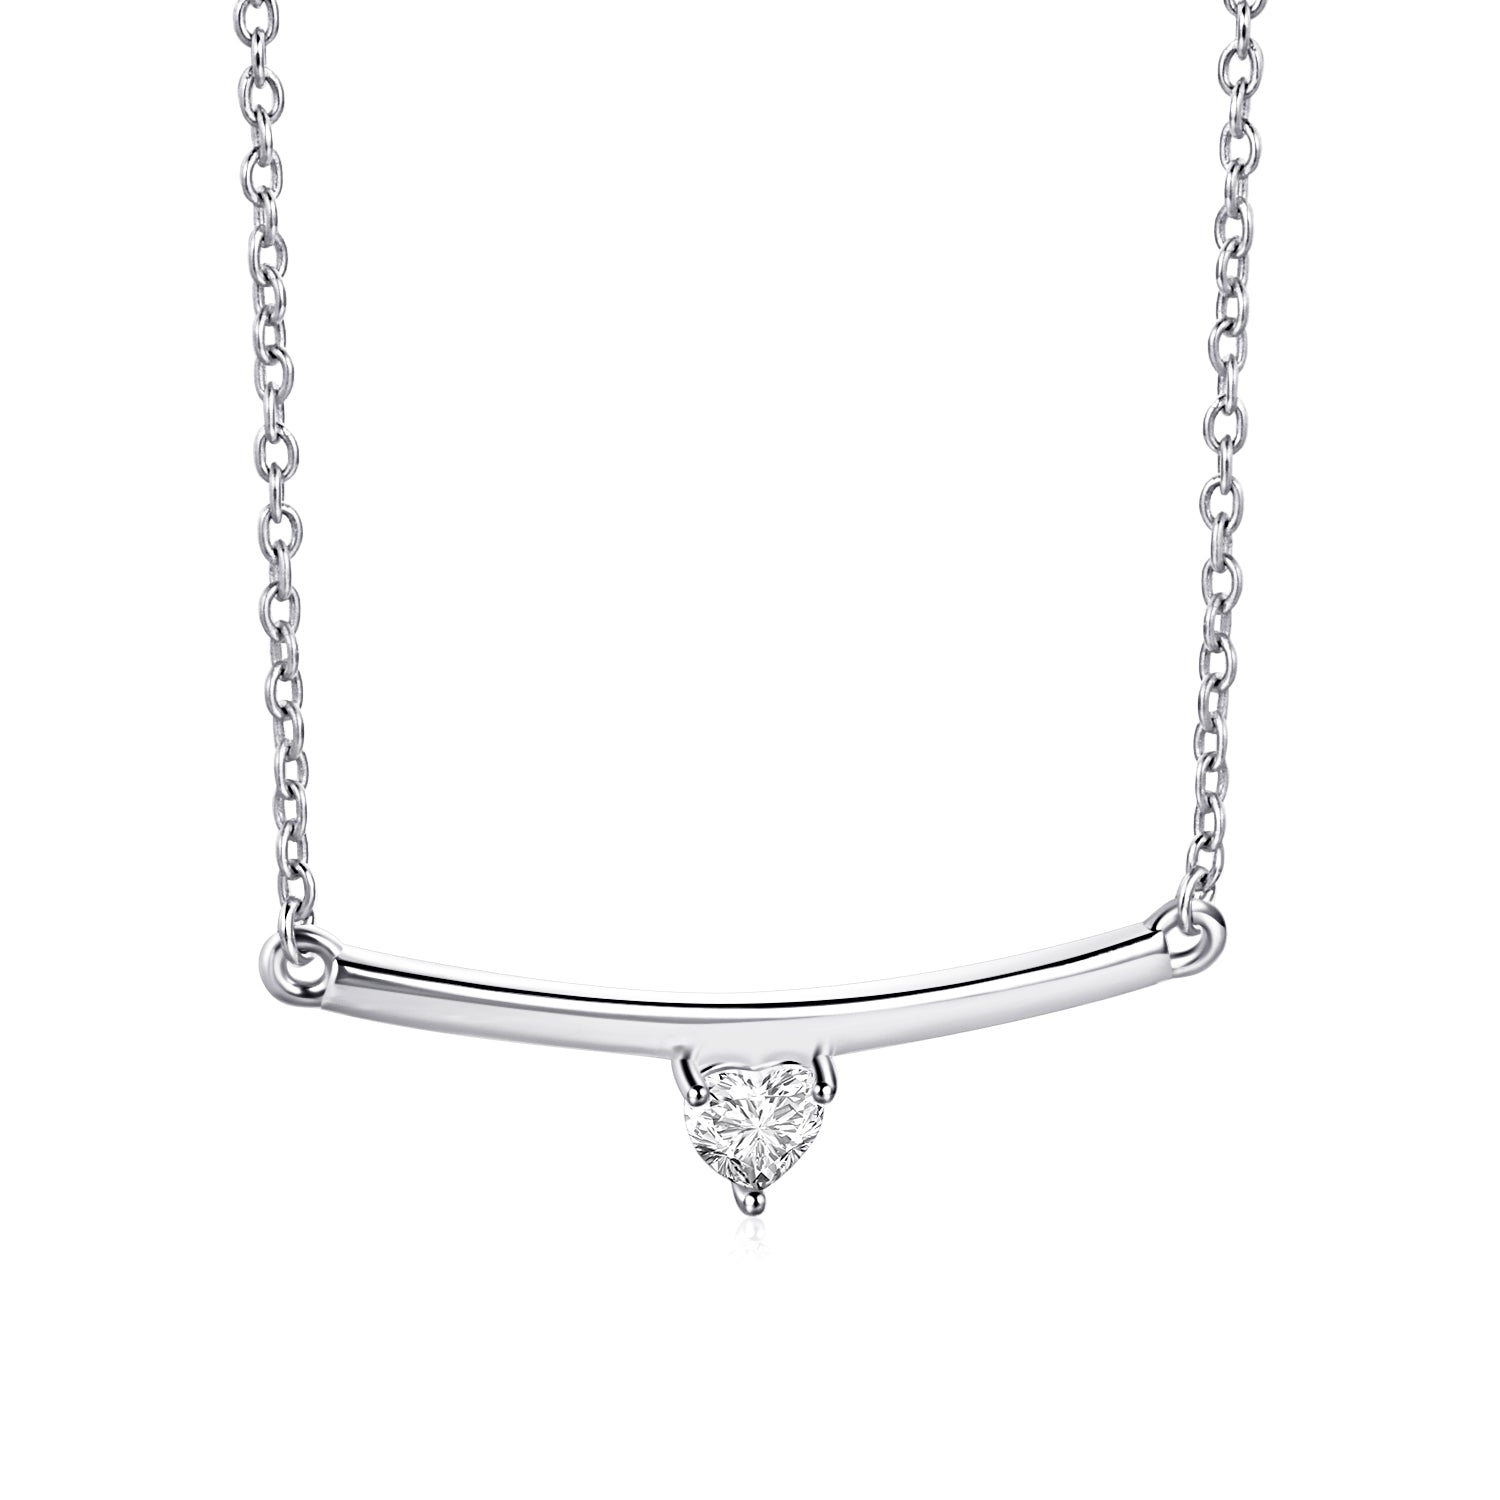 Bar Necklace Choker Cubic Zircon Rhodium Plating Silver Necklace